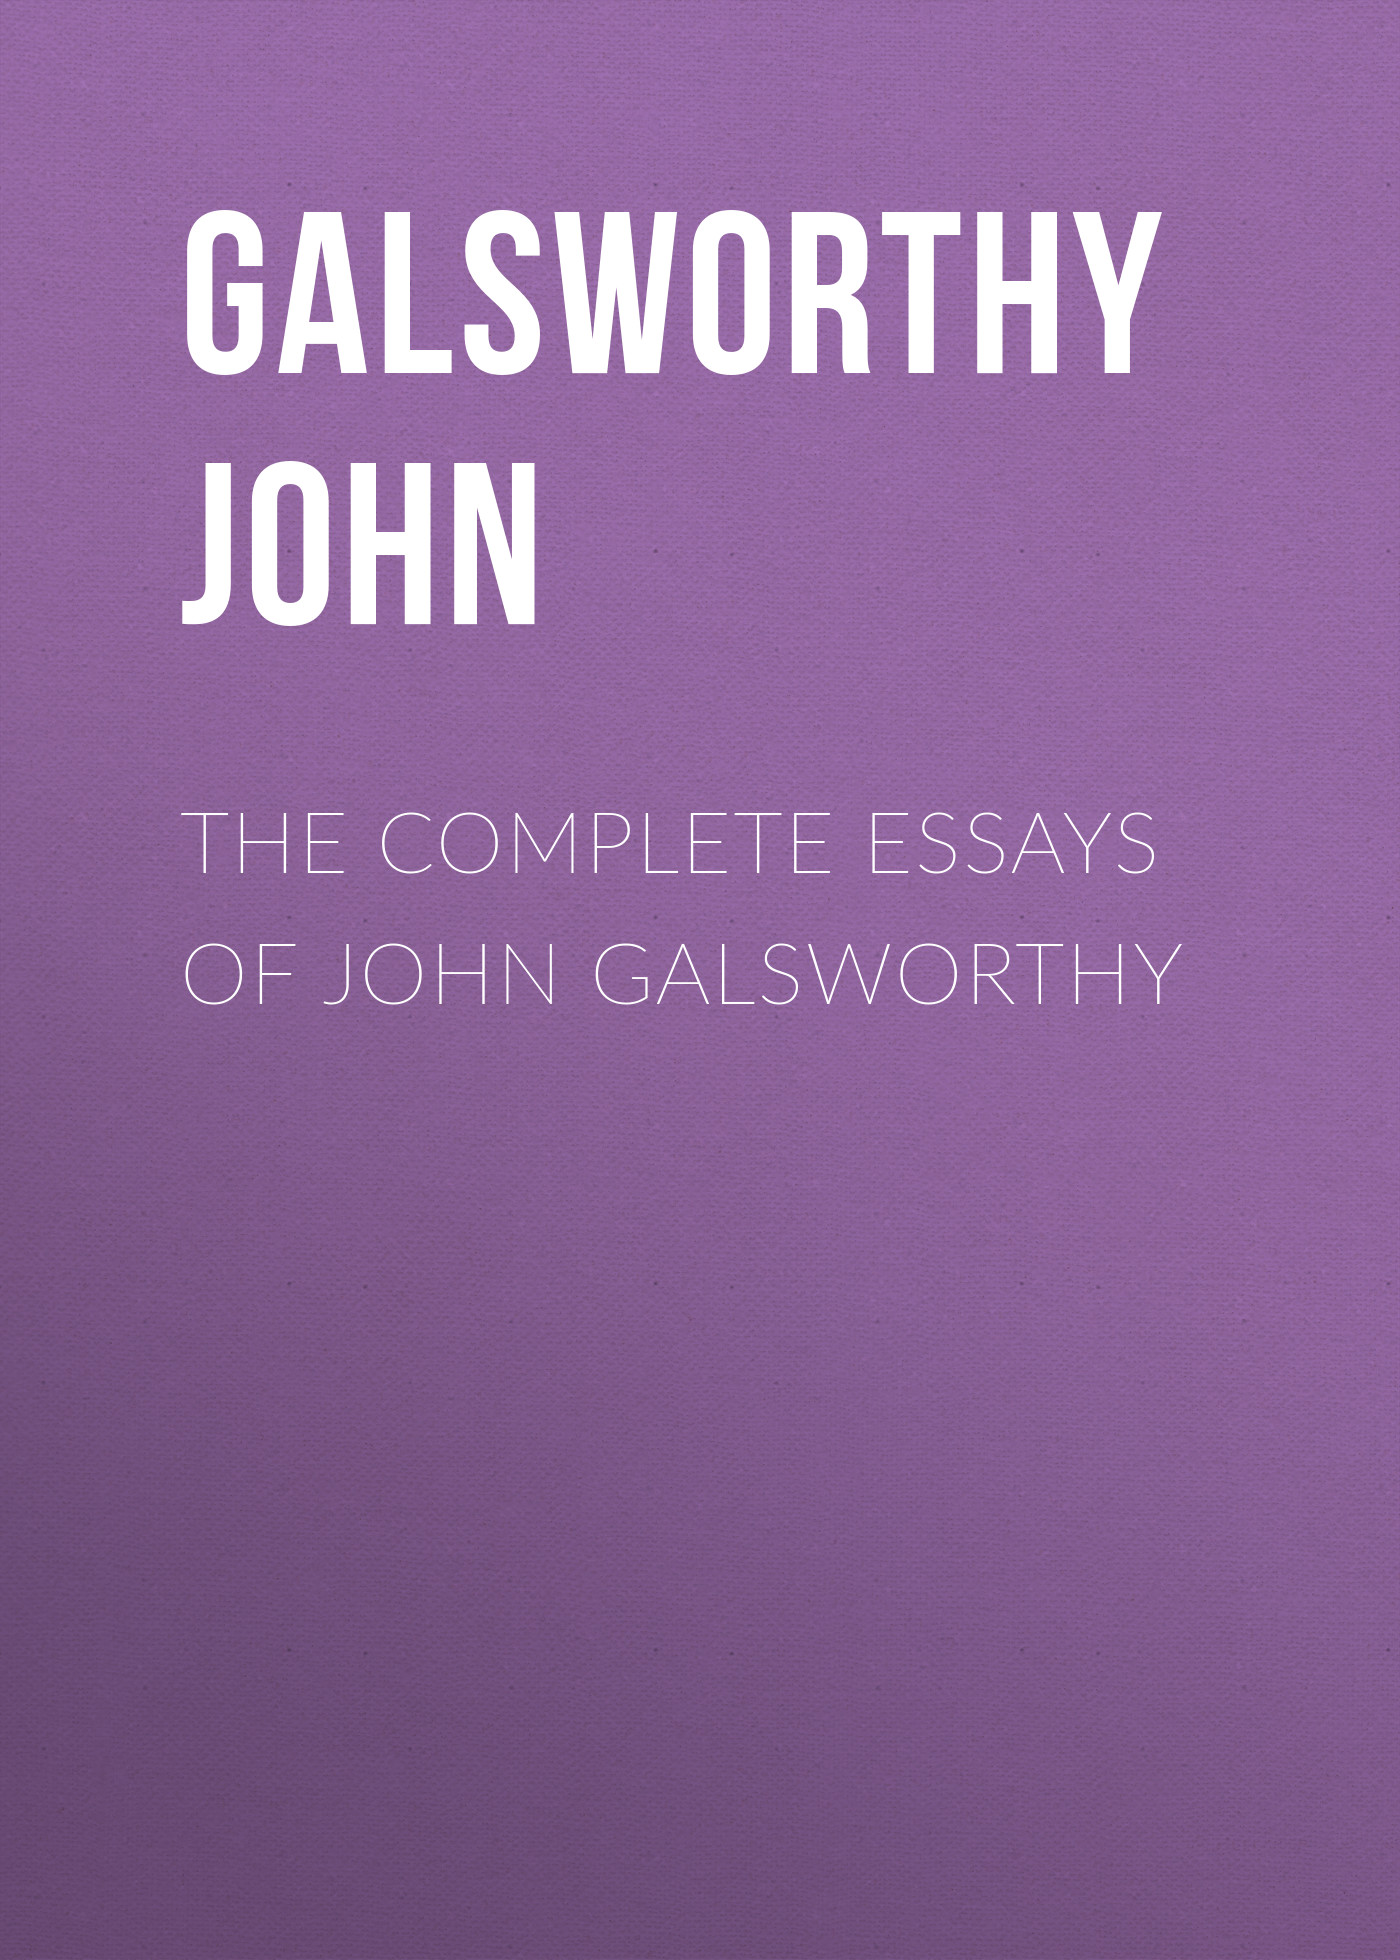 Galsworthy John The Complete Essays of John Galsworthy john galsworthy the burning spear